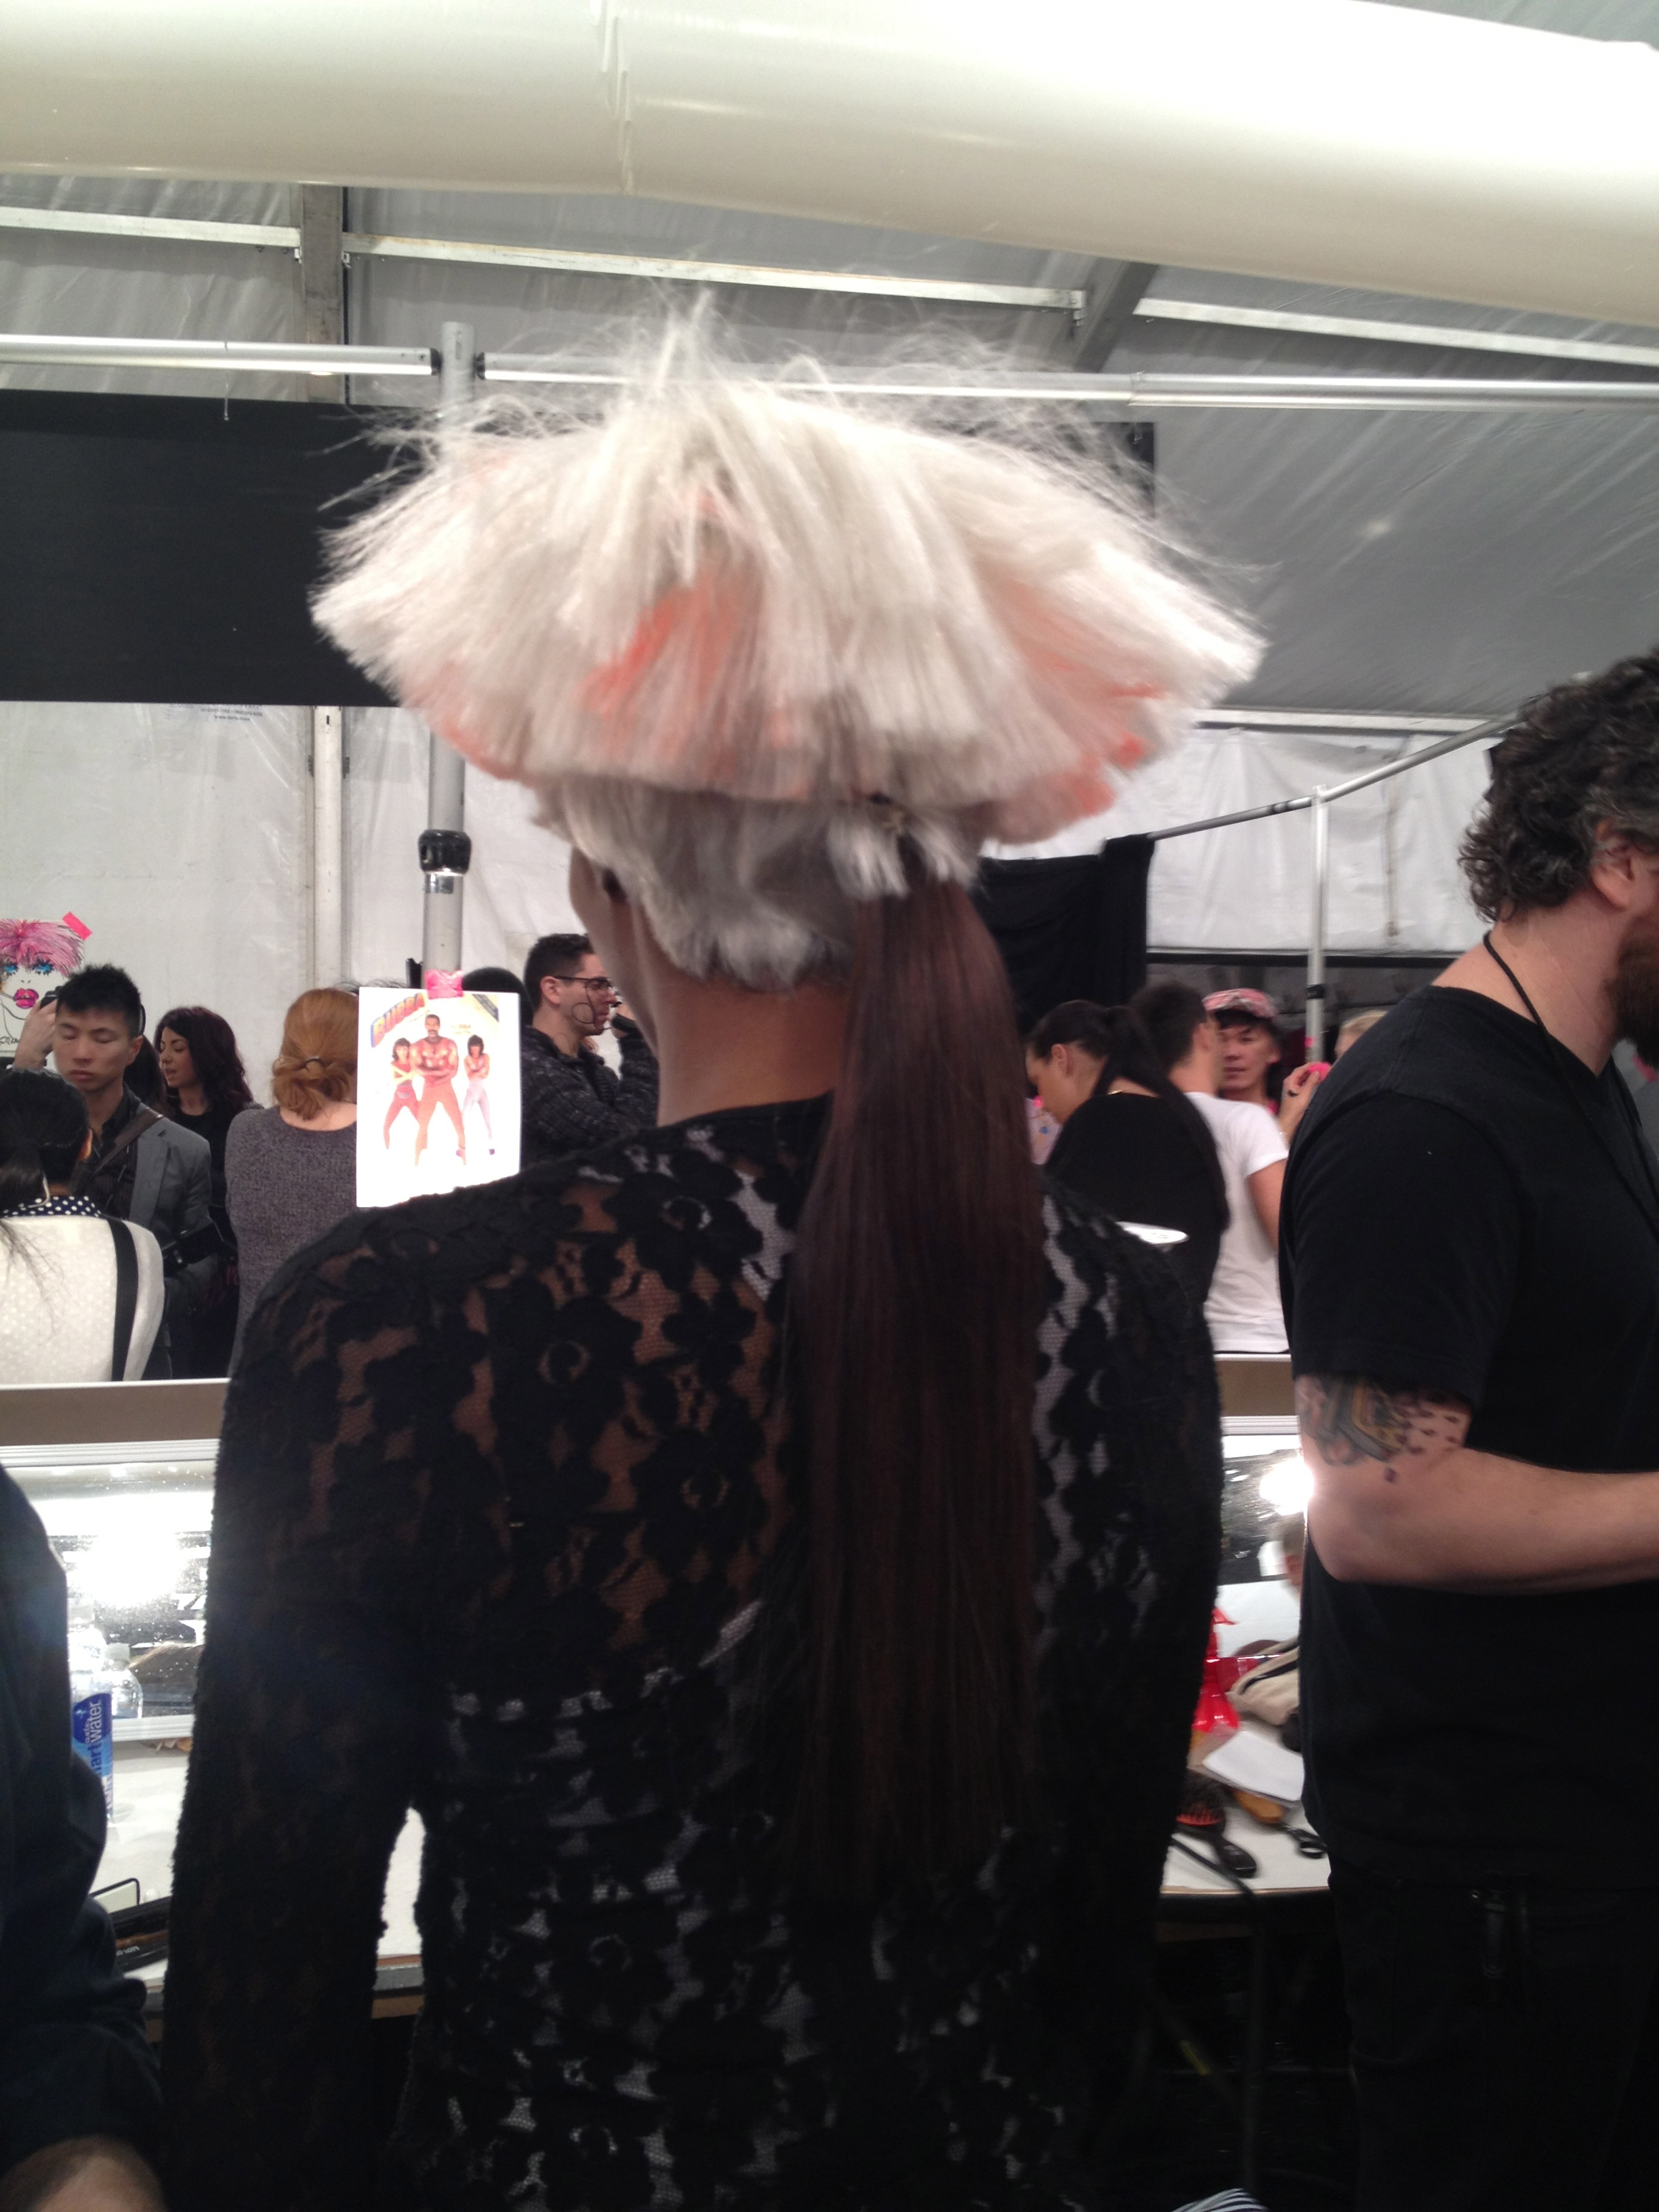 Rear-view of the wig and pony combination.